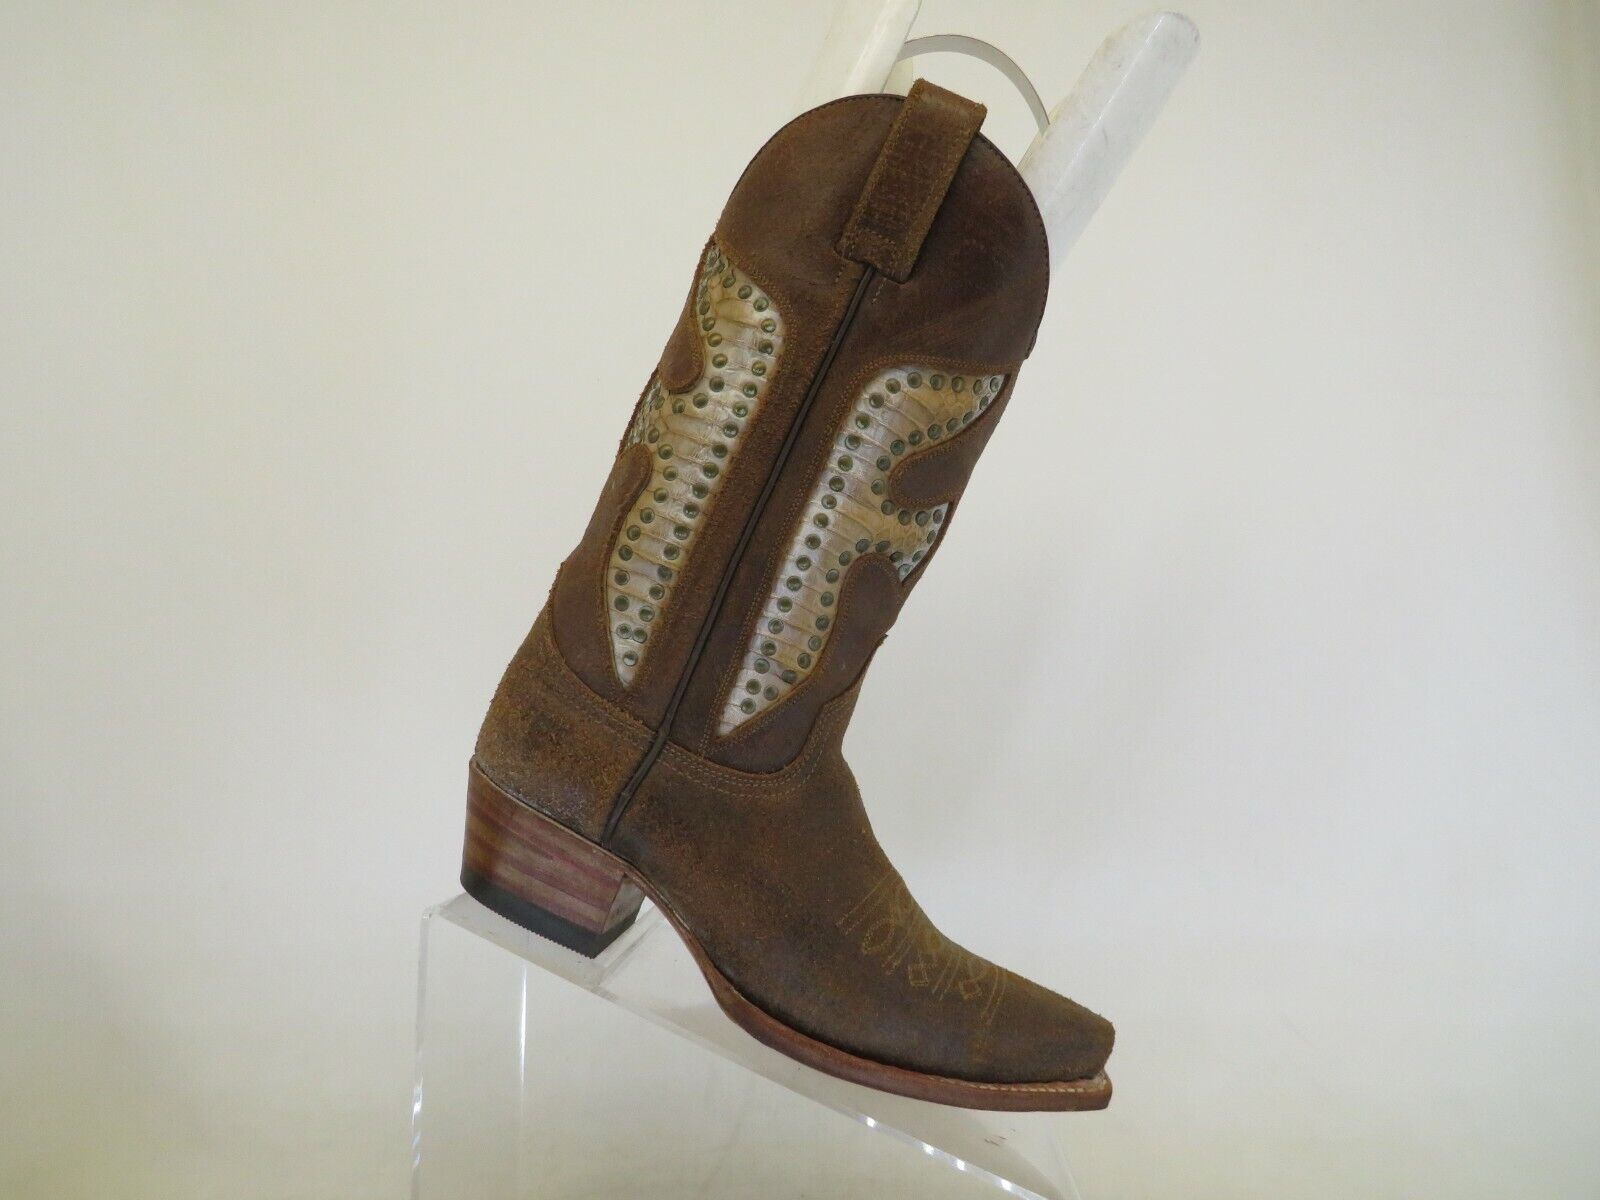 EUC Frye Distress Brown Rough Out Leather Inlay Cowboy Boots Womens Size 6 M